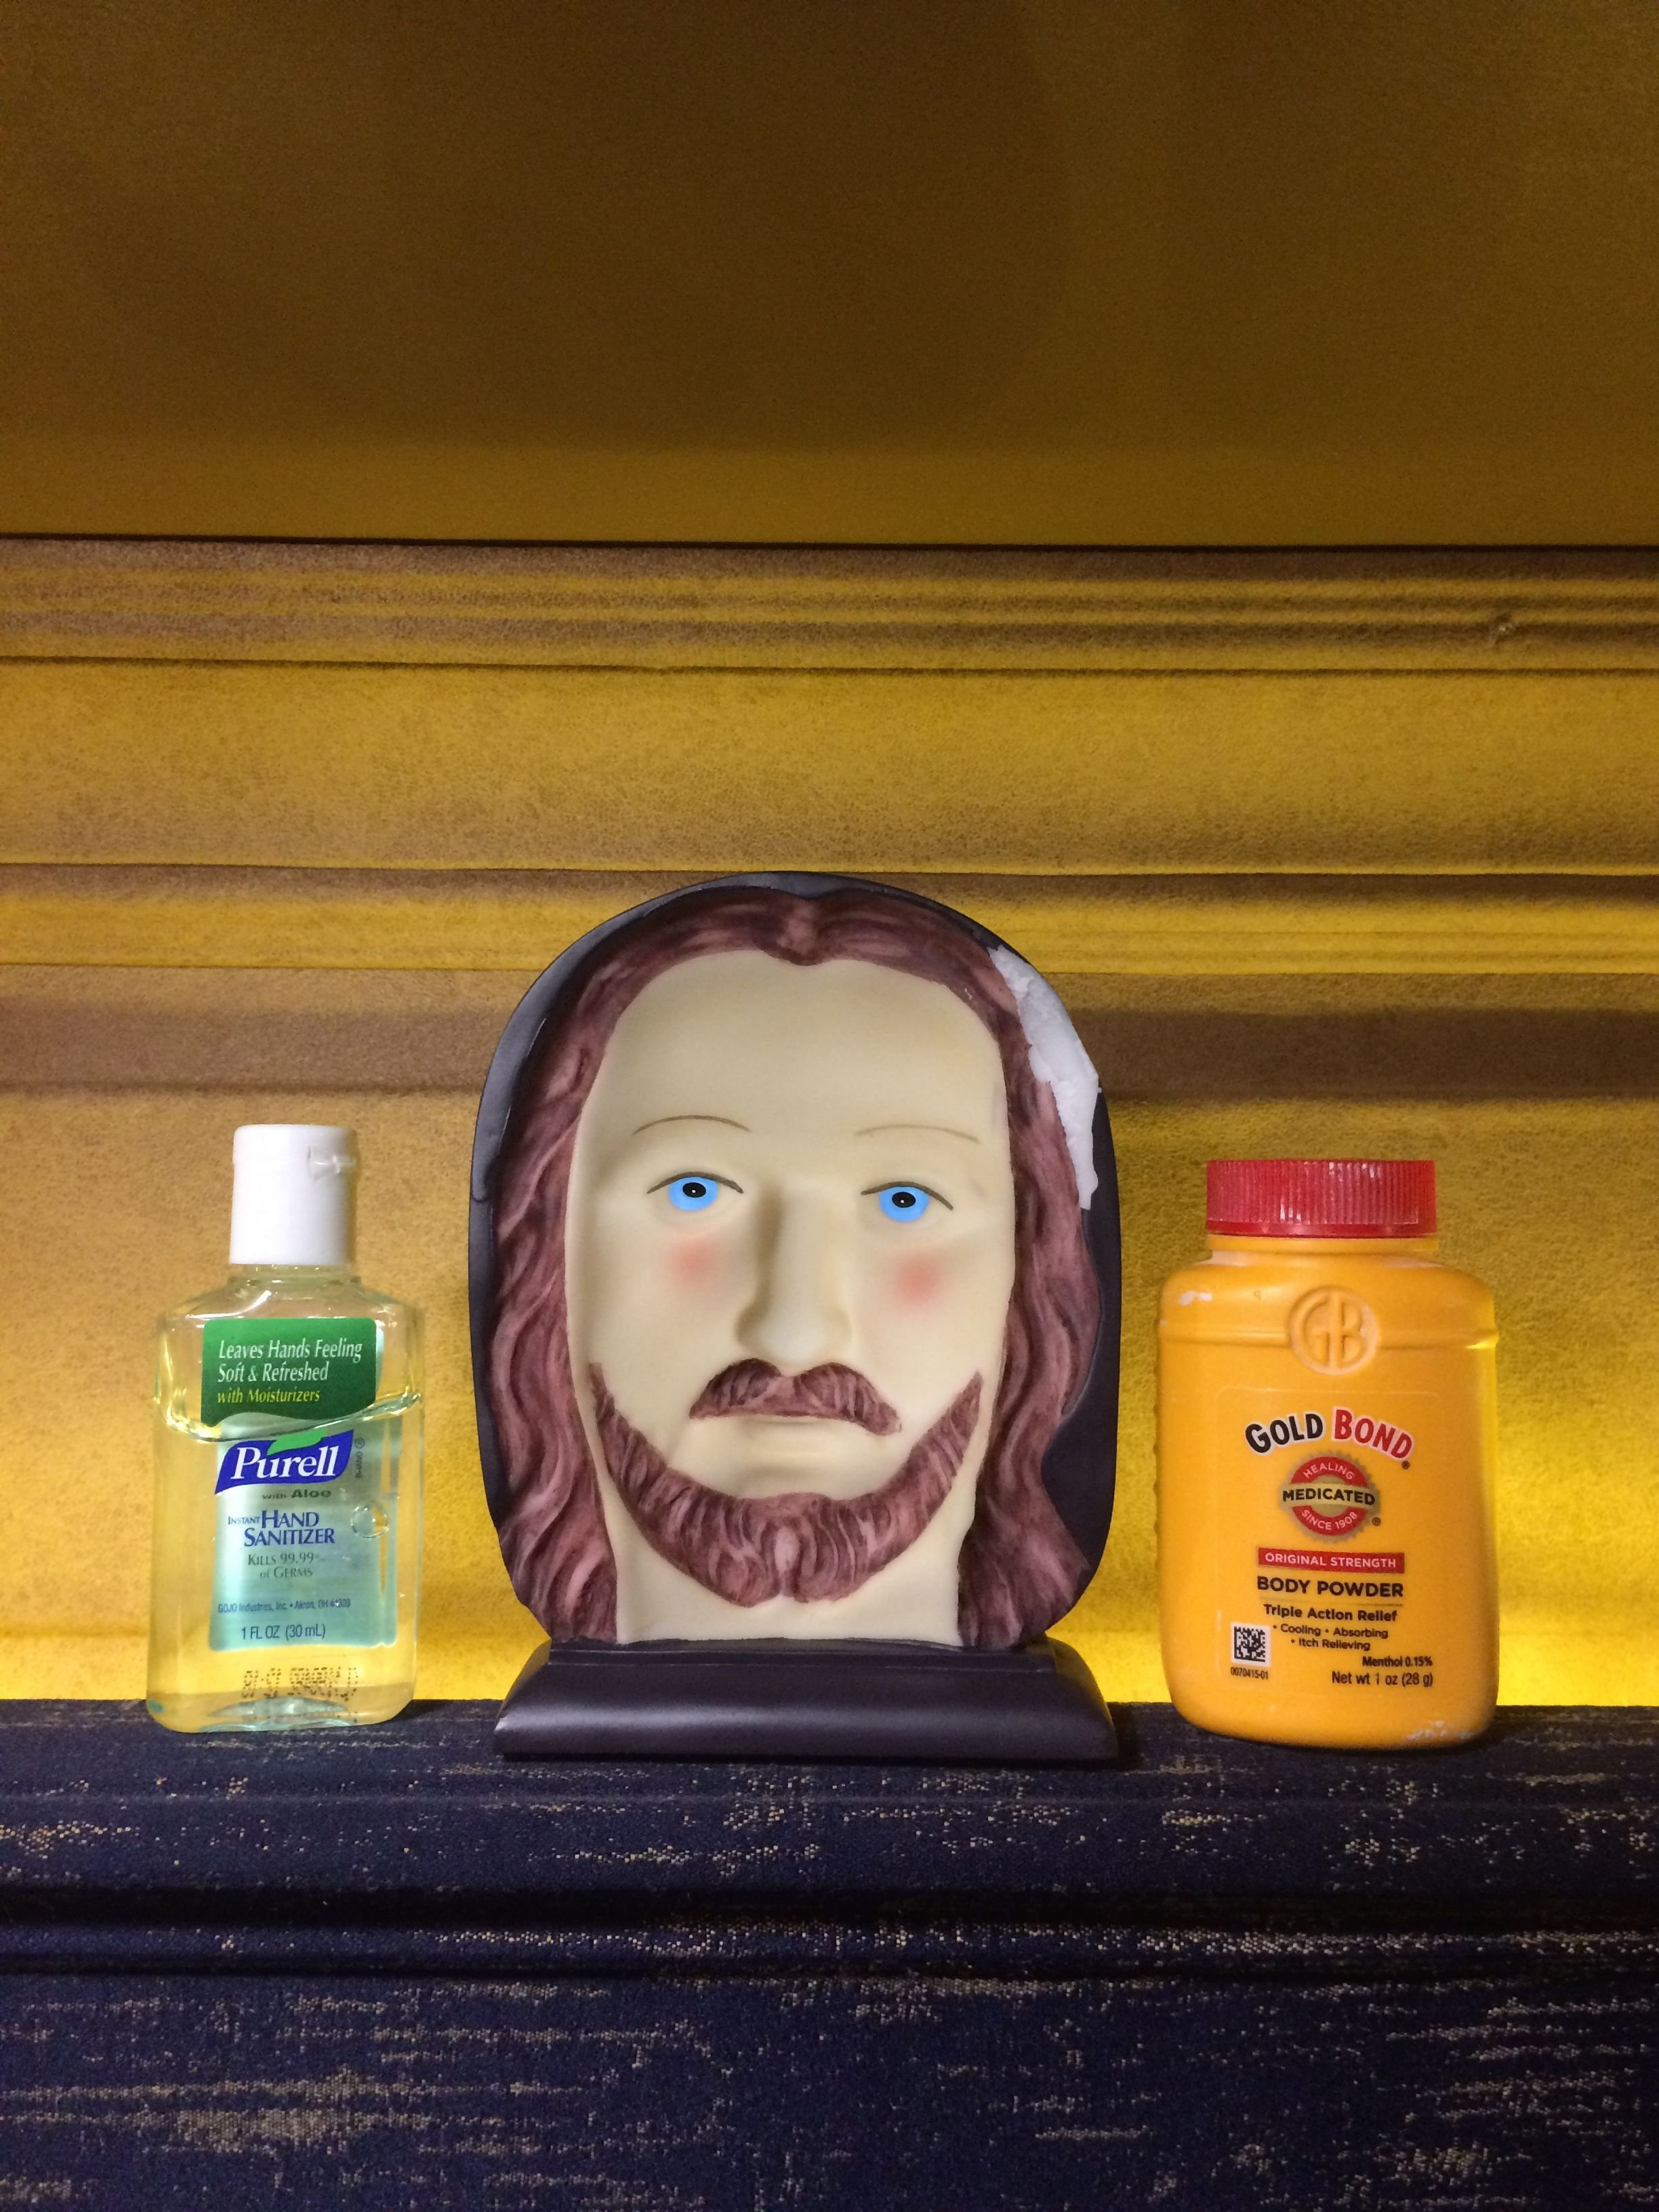 Purell Jesus And Gold Bond Trifecta The Holy Trinity Of